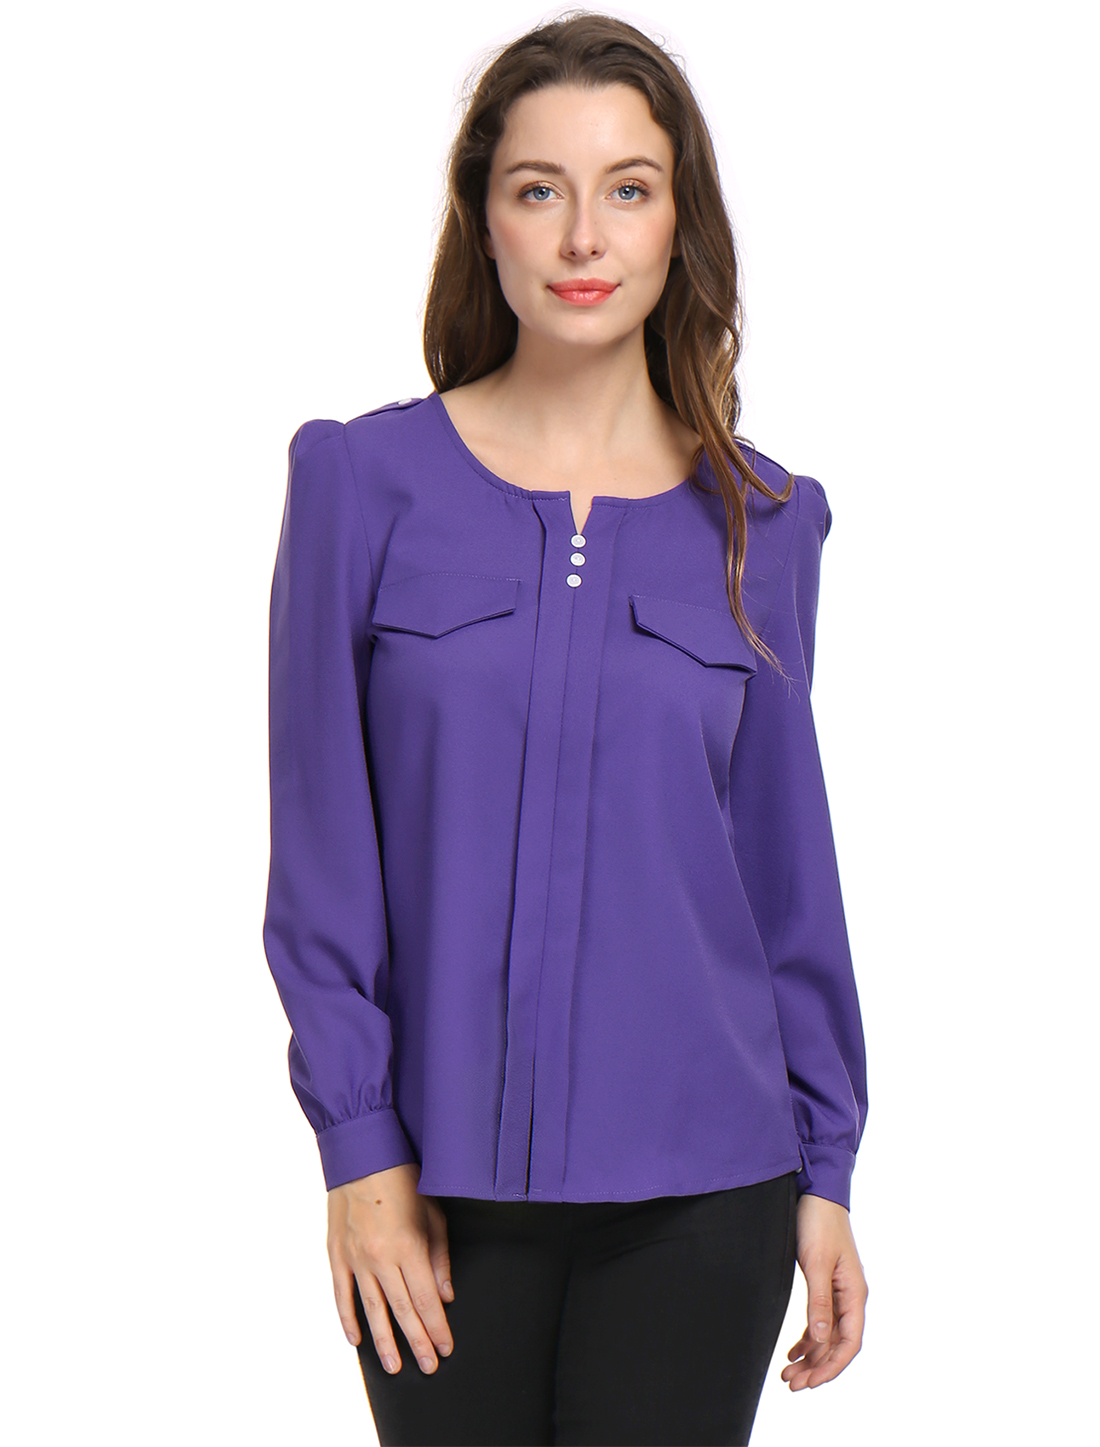 Women Buttons Decor Mock Pockets Ruched Blouse Purple S